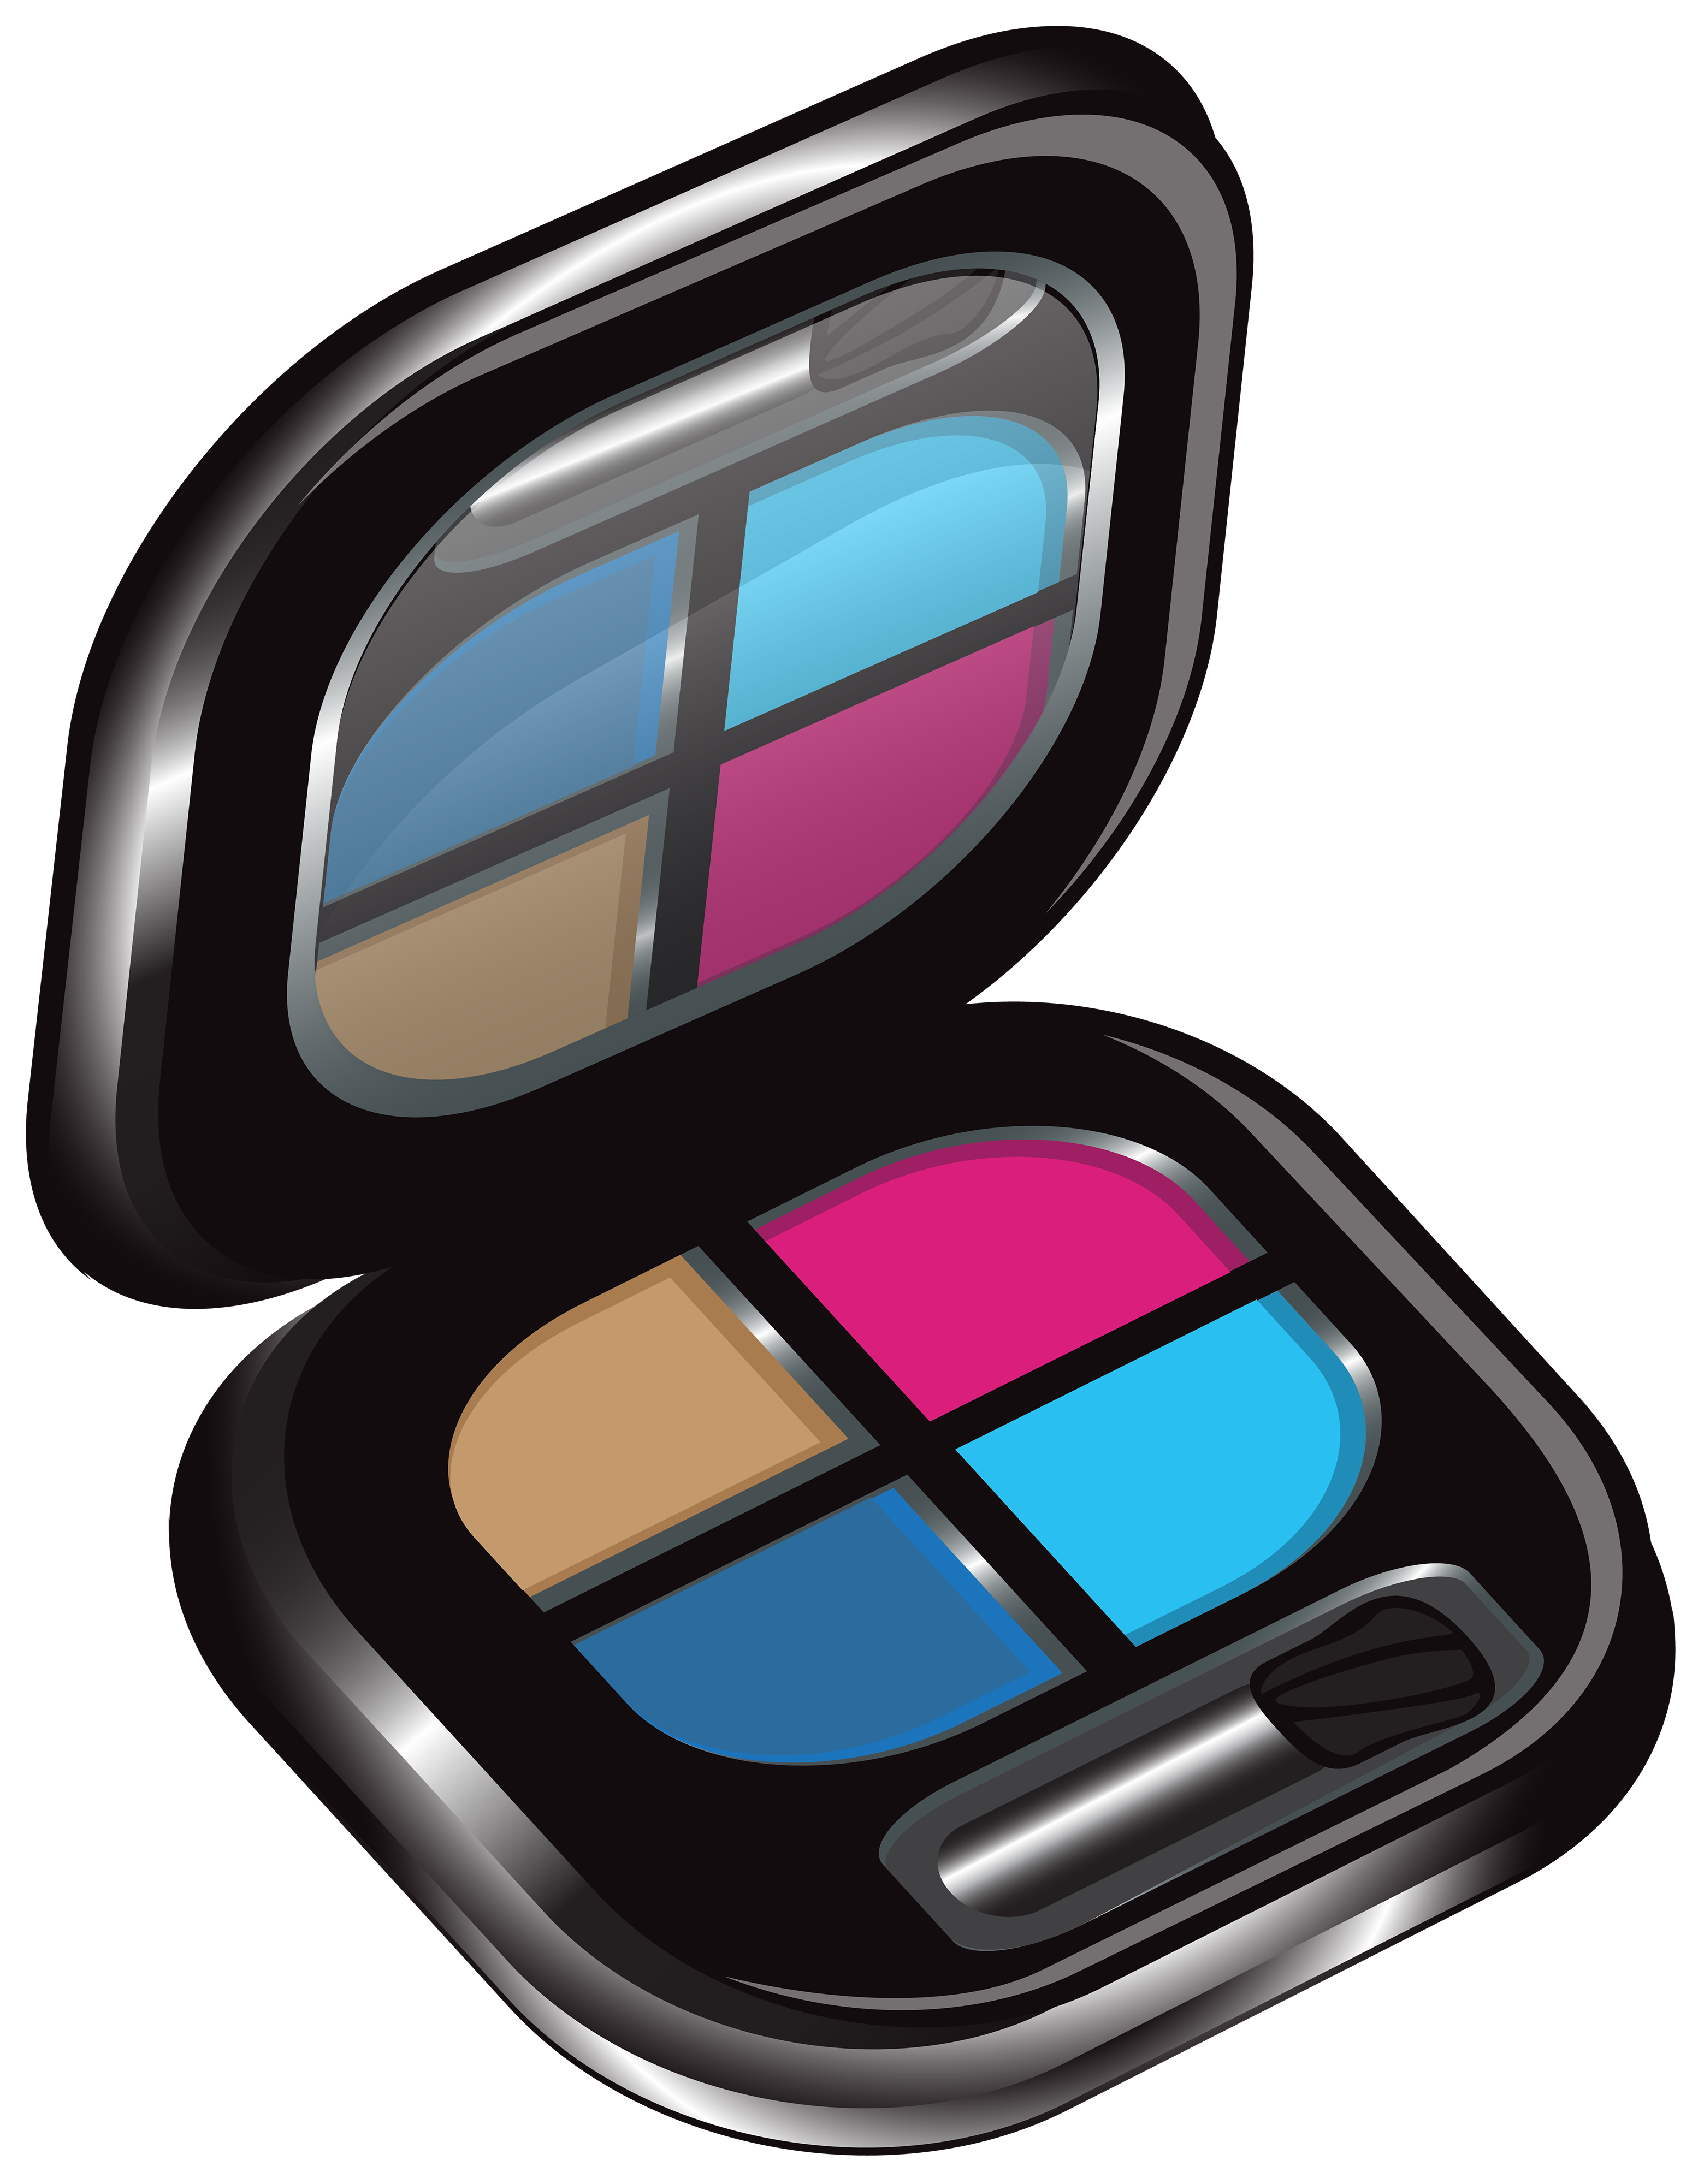 Makeup clipart makeup pallet. Eyeshadows png image gallery